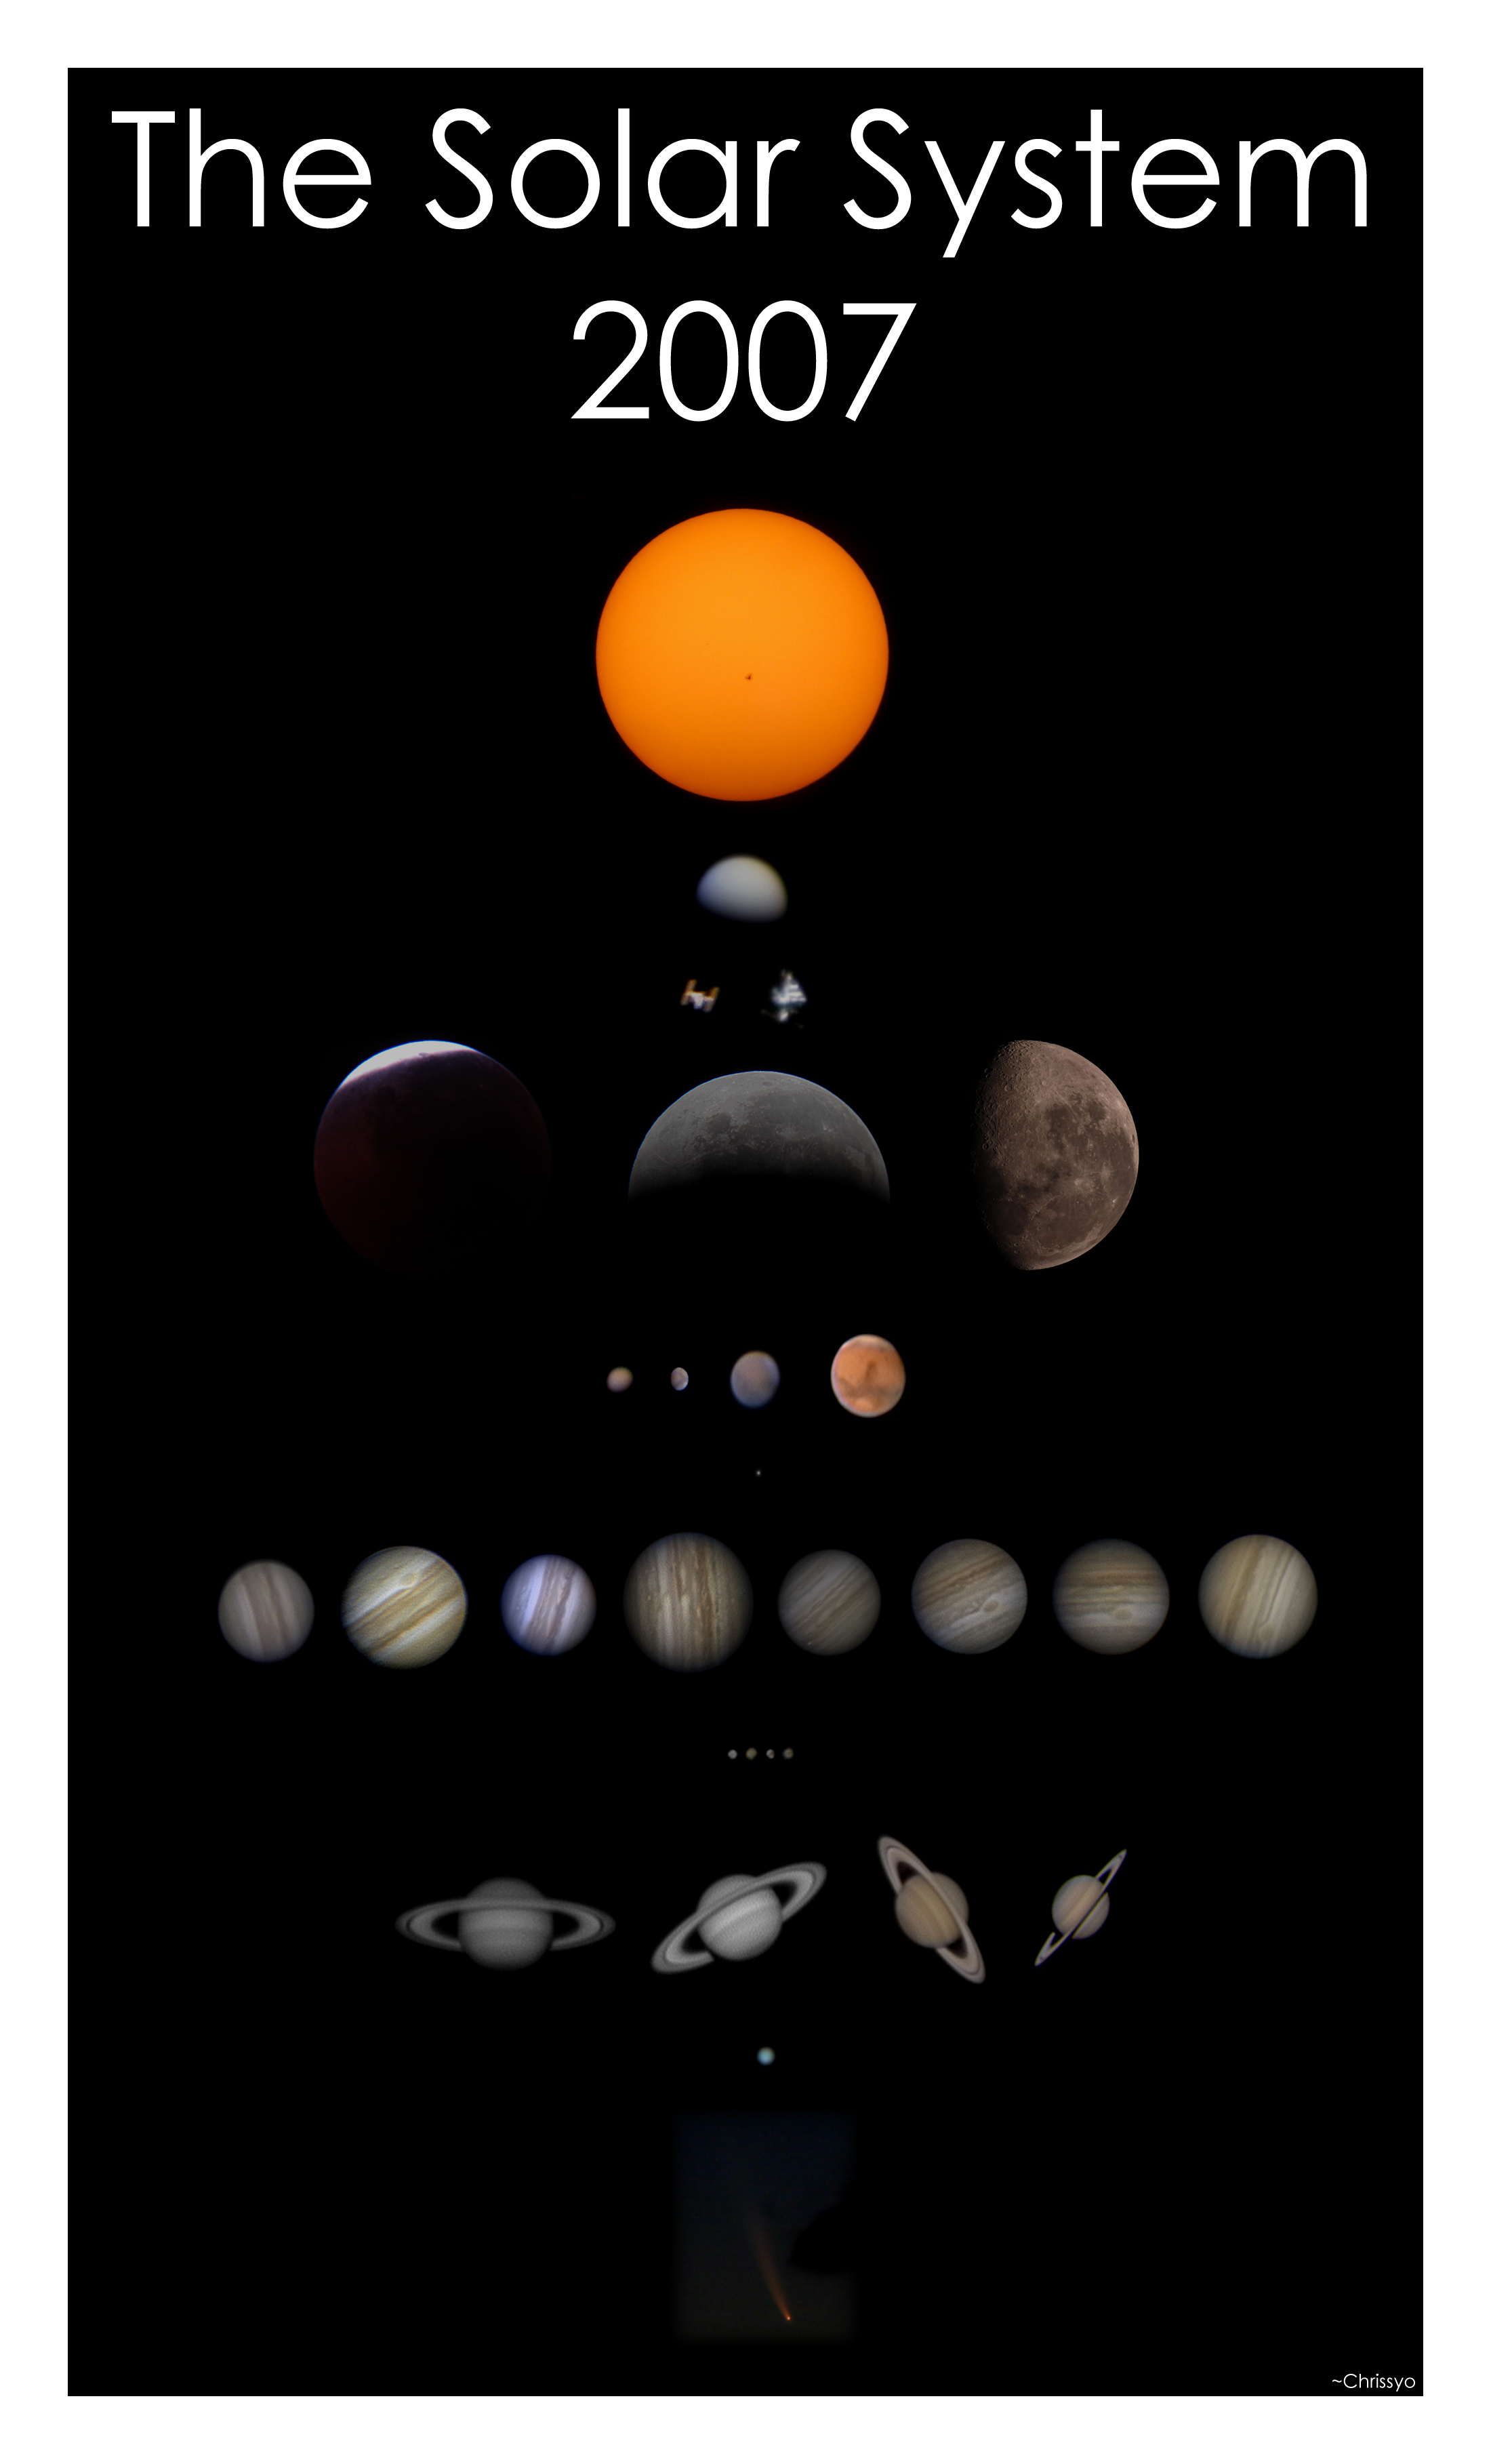 The Solar System 2007 by Chrissyo